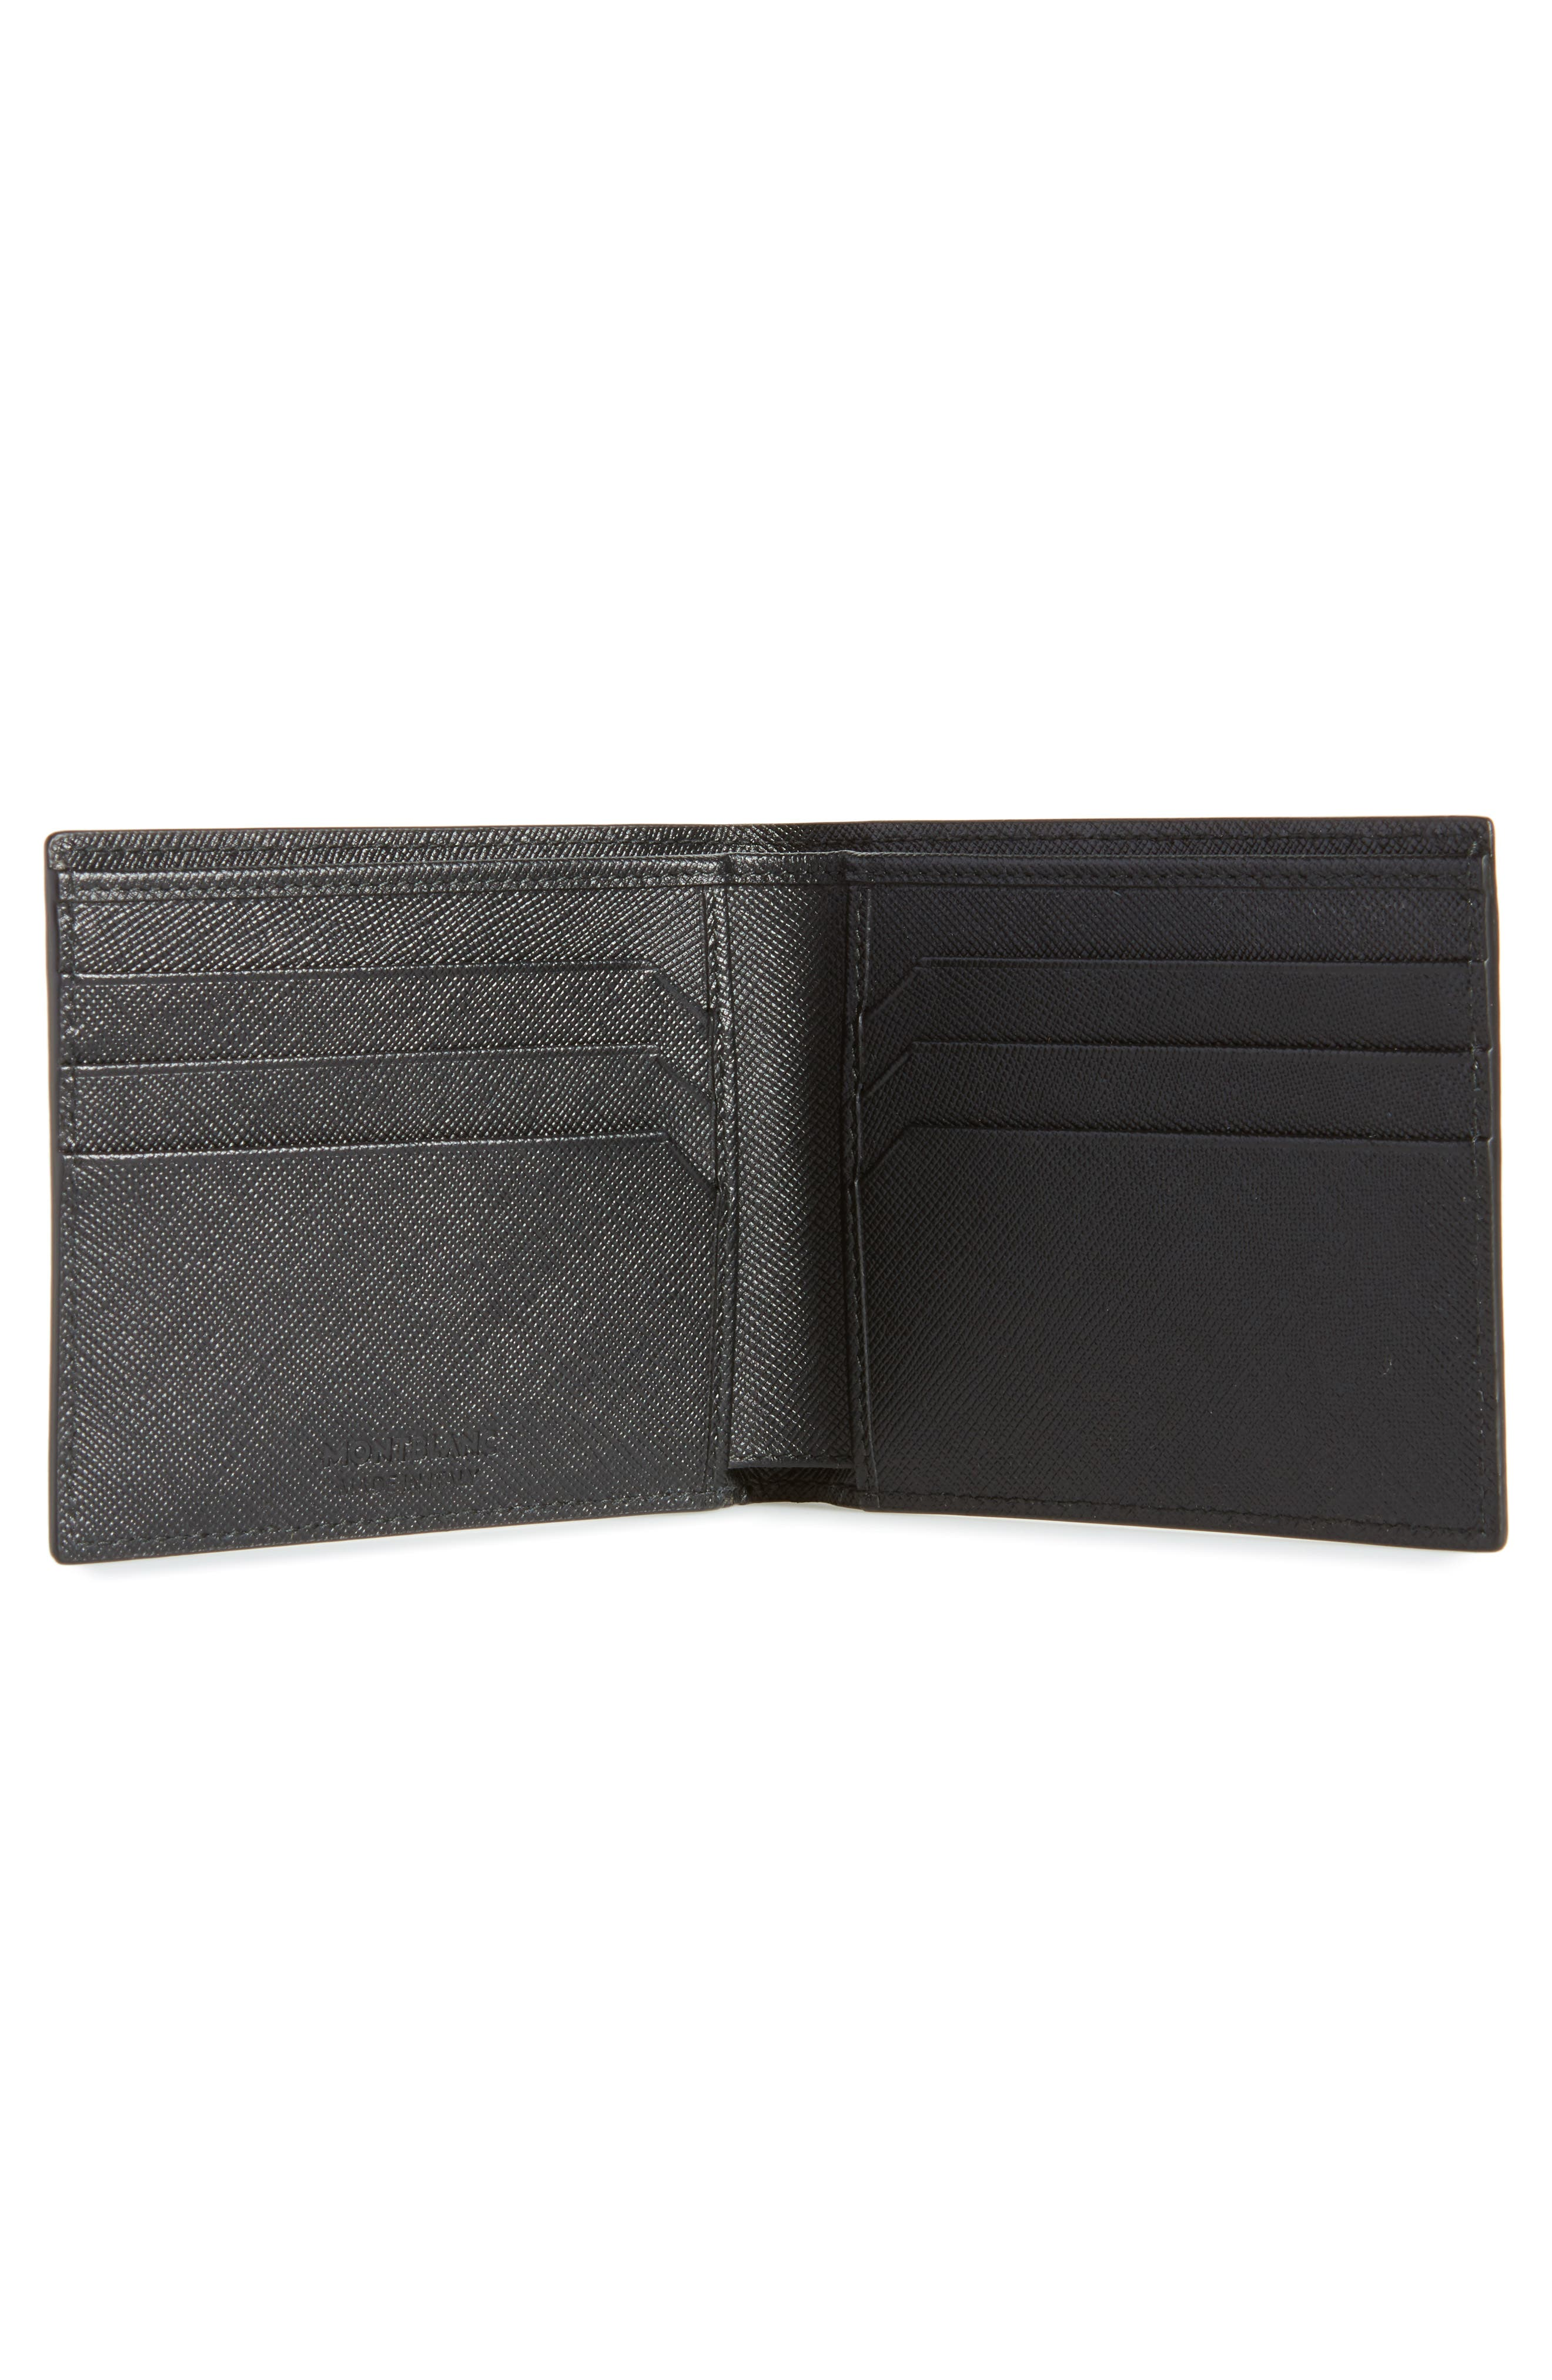 Sartorial Leather Bifold Wallet,                             Alternate thumbnail 3, color,